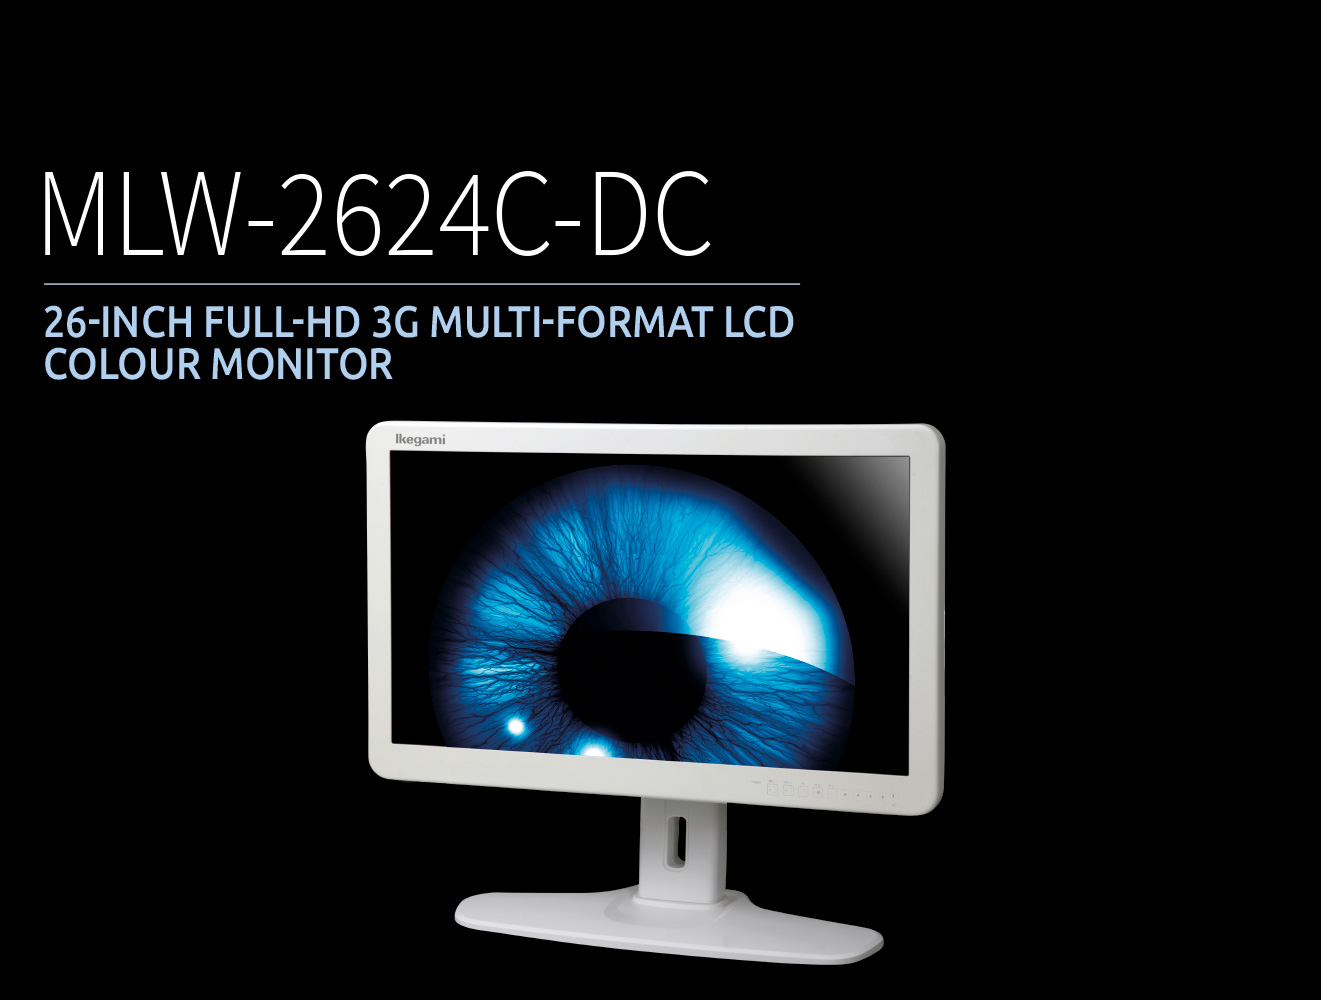 MLW-2624C-DC